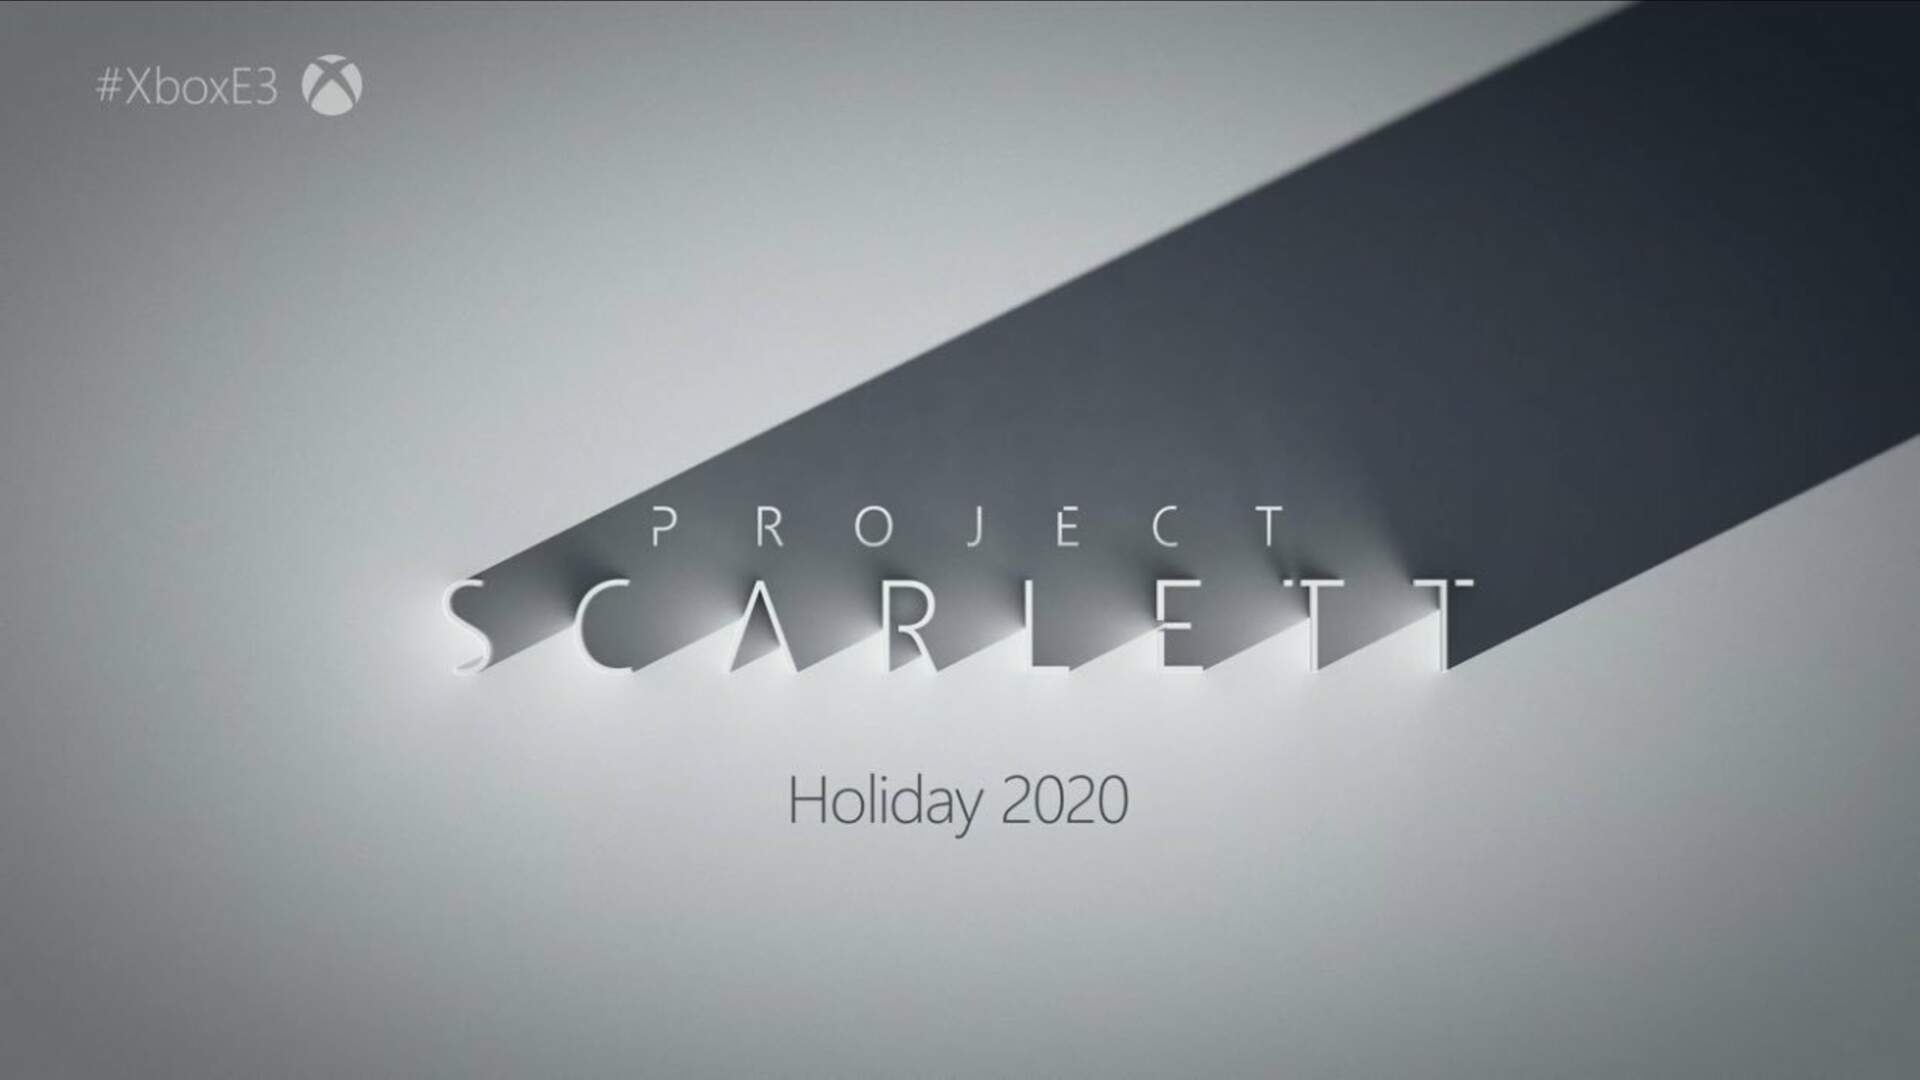 Project Scarlett Will be Backward Compatible for Games and Accessories, All the Way Back to the Original Xbox